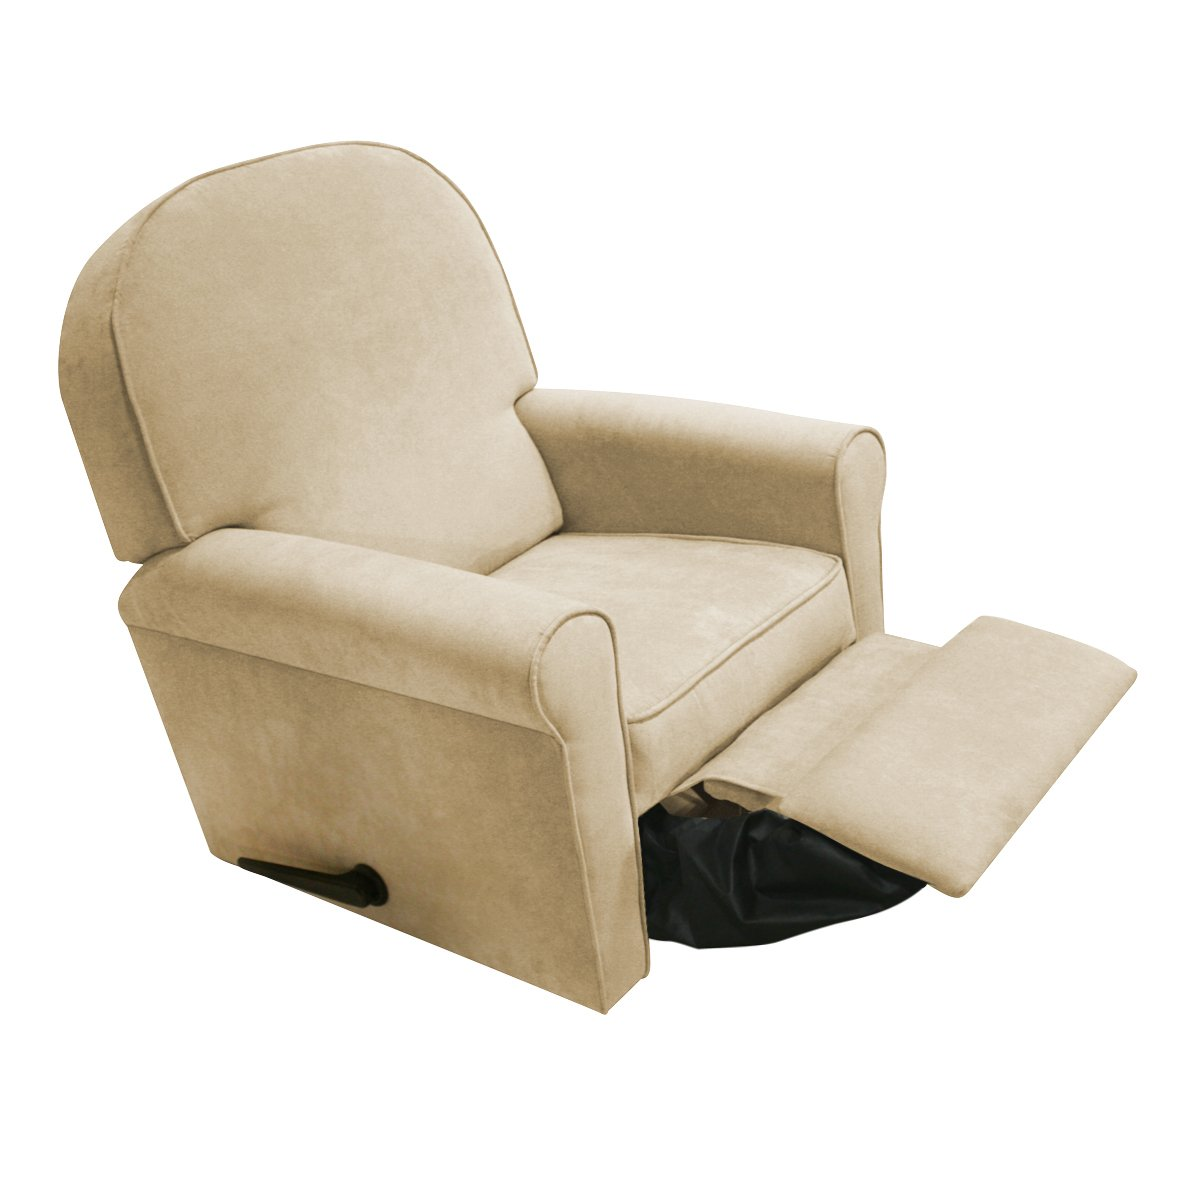 Amazon.com  The Rockabye Glider Jayden Recliner Micro Beige  Nursery Gliders  Baby  sc 1 st  Amazon.com : infant recliner - islam-shia.org